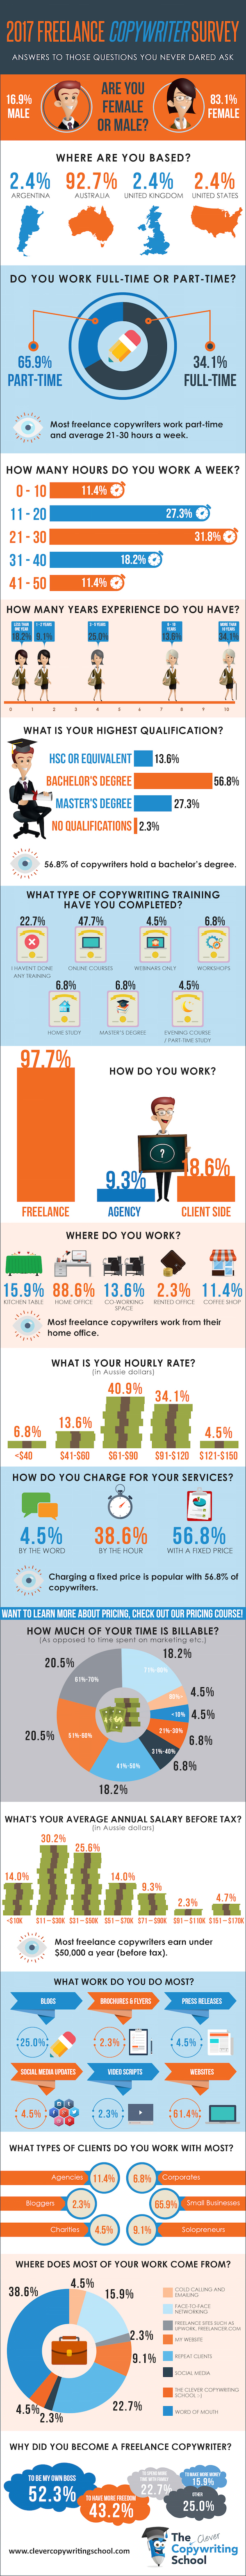 2017_Freelance_Copywriter_Survey_